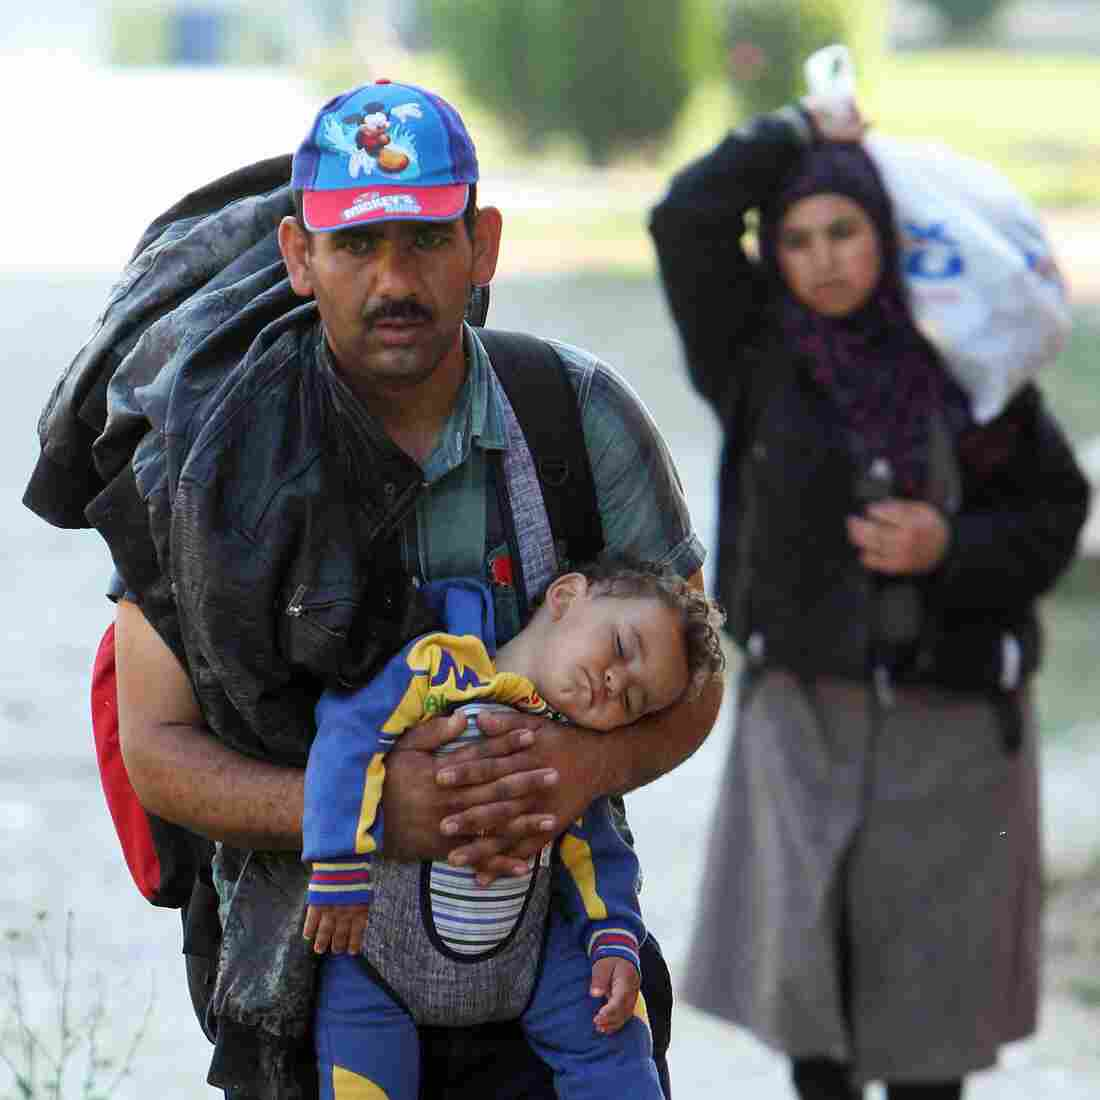 Refugees from Syria arrive in Presevo, near the border with Macedonia, in the south of Serbia, on Wednesday. The U.N. says more than 4 million have fled the civil war in Syria, making it the worst refugee crisis in a quarter century.